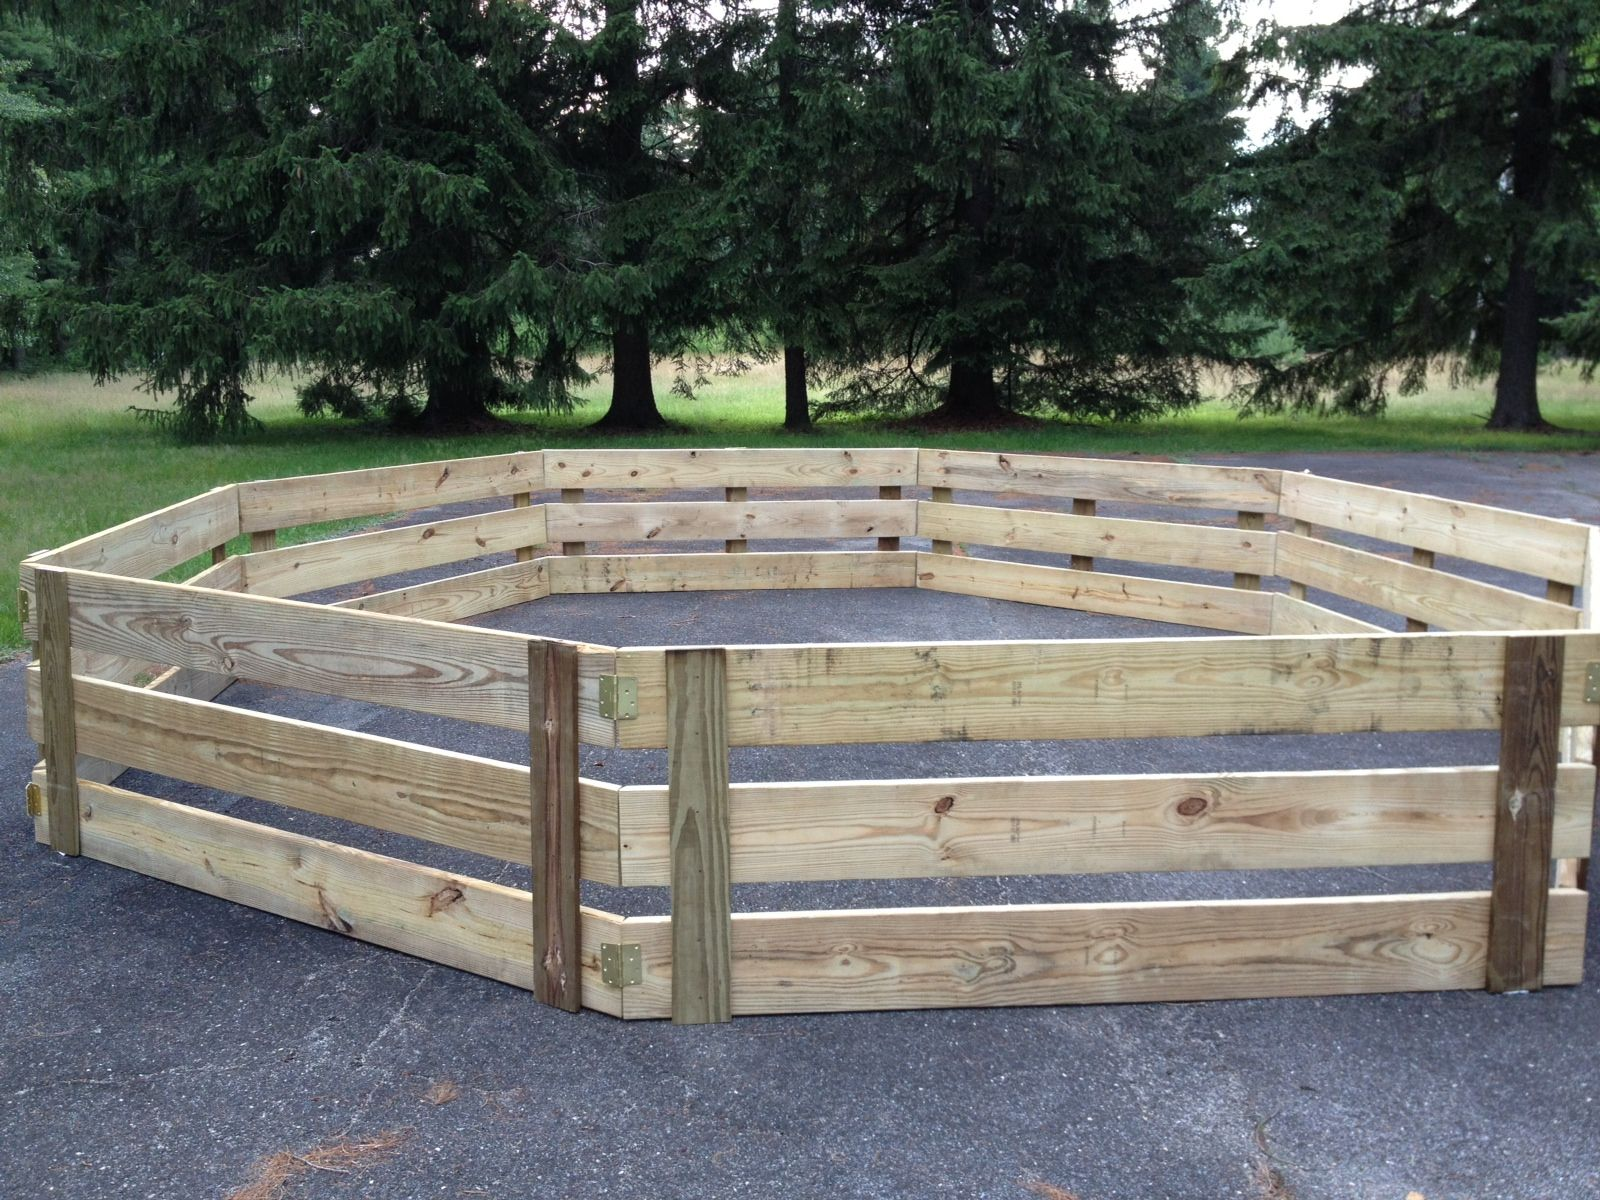 Portable Gaga Pit (Israeli Dodge Ball) | The floor, Six sides and ...